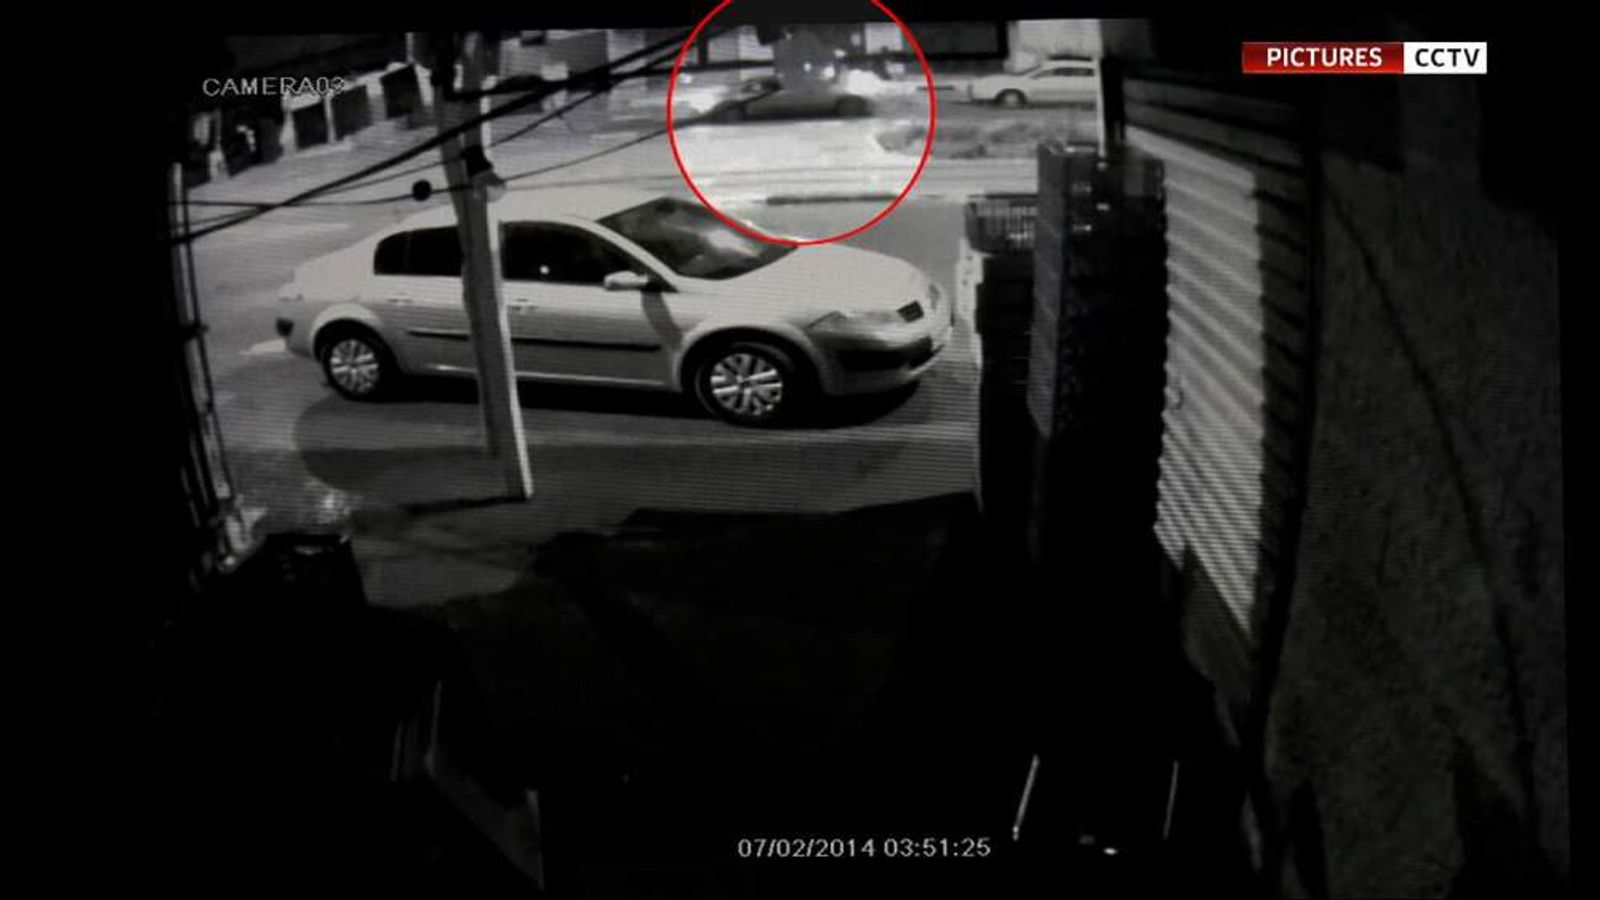 CCTV footage allegedly showing the kidnapping